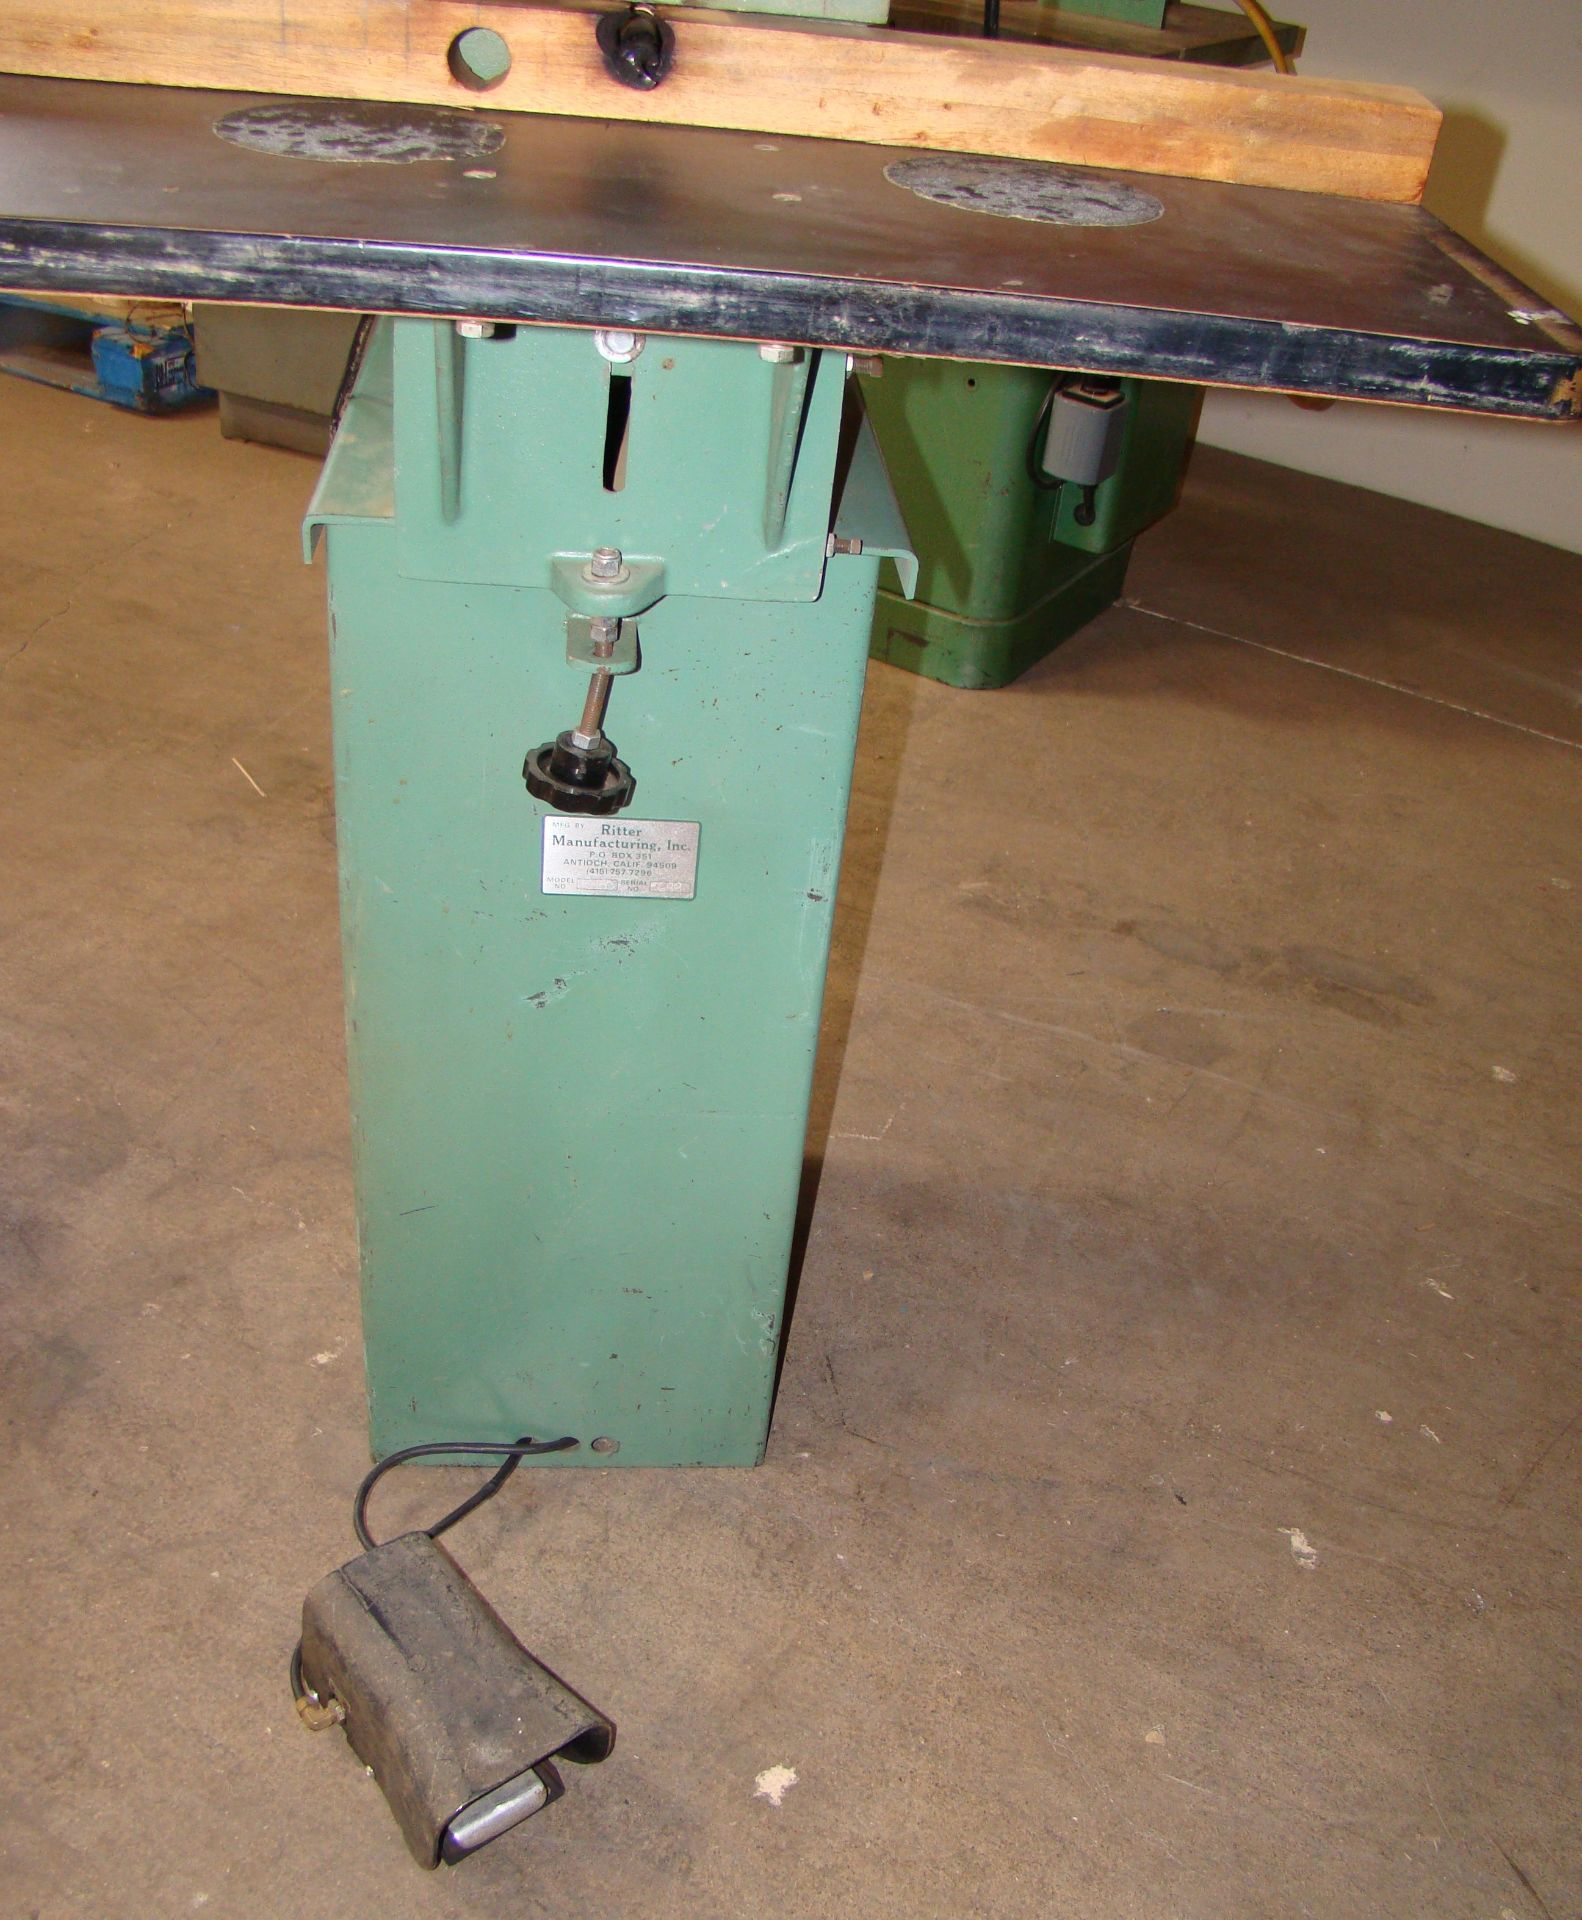 Ritter 1 Spindle Boring Machine, Pneumatic Foot Pedal, Baldor 3/4 HP 115/230 Volts 1 Phase Motor - Image 4 of 7